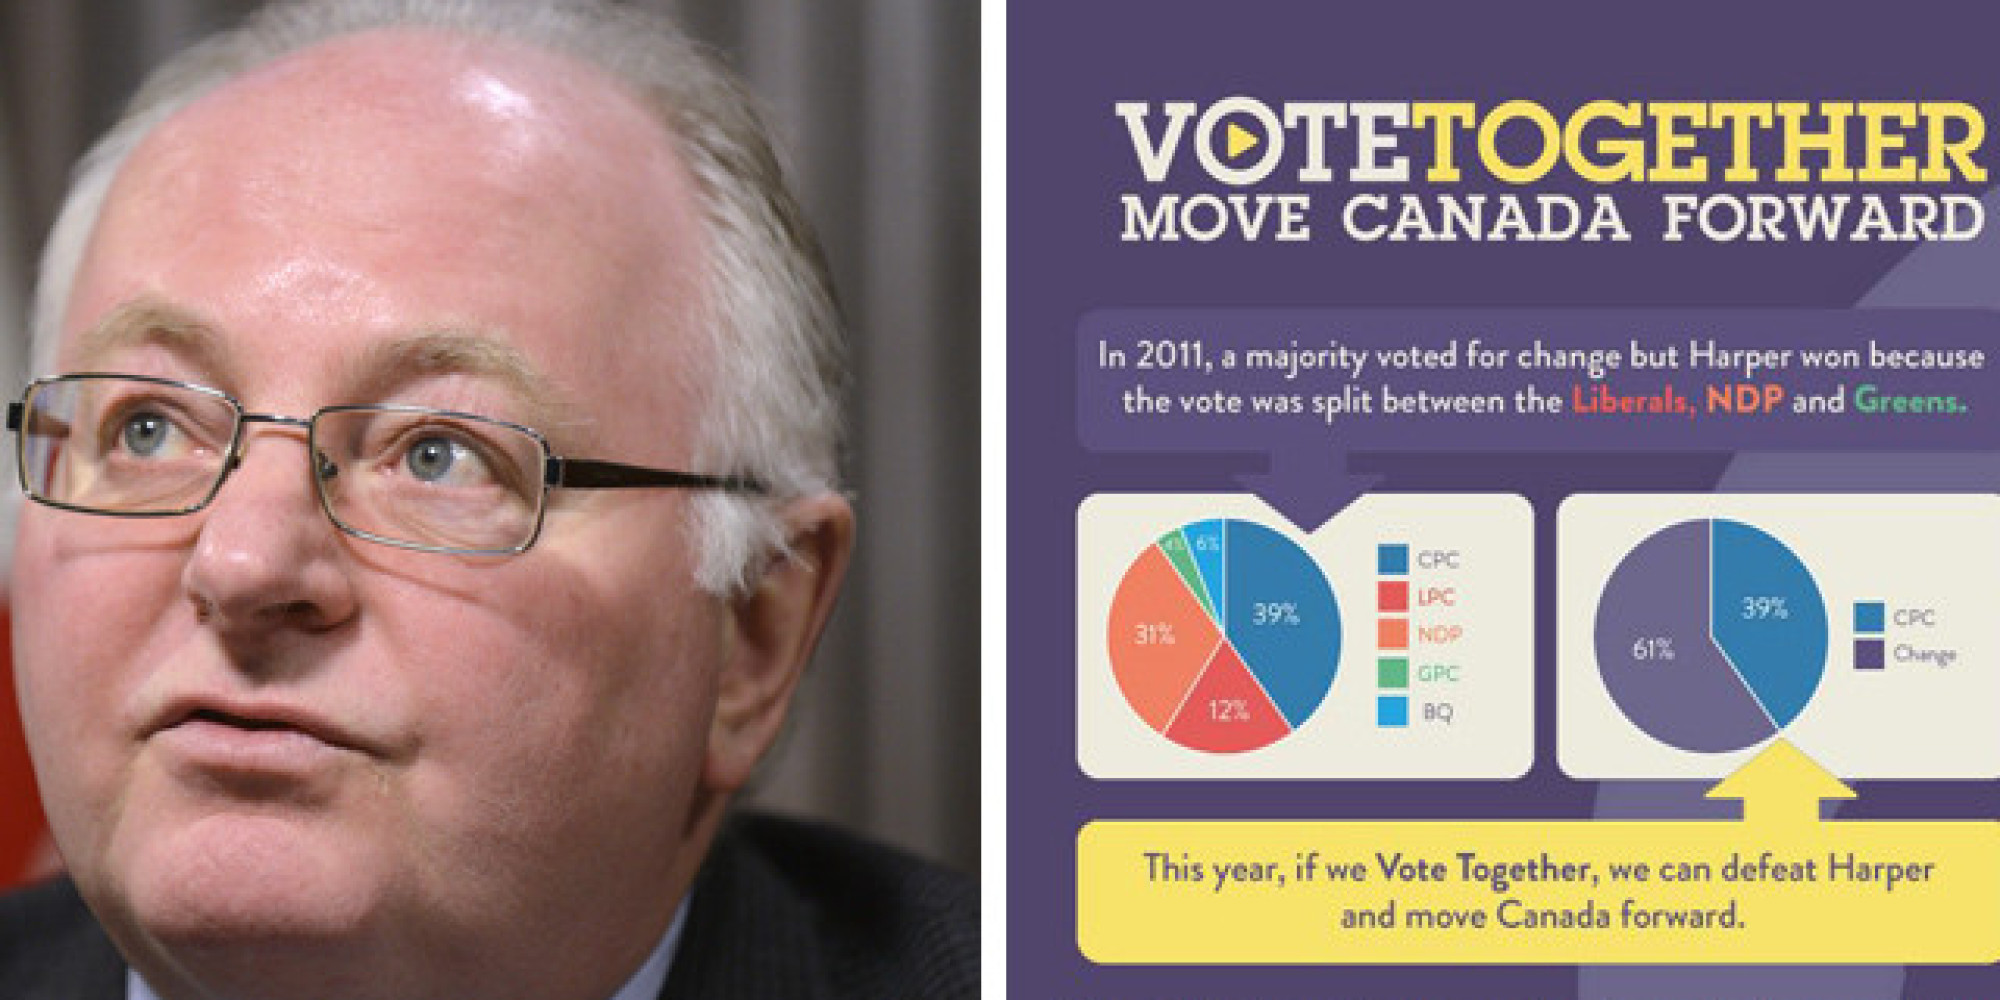 CUPE Slams Campaign Encouraging Canadians To 'Vote Together'